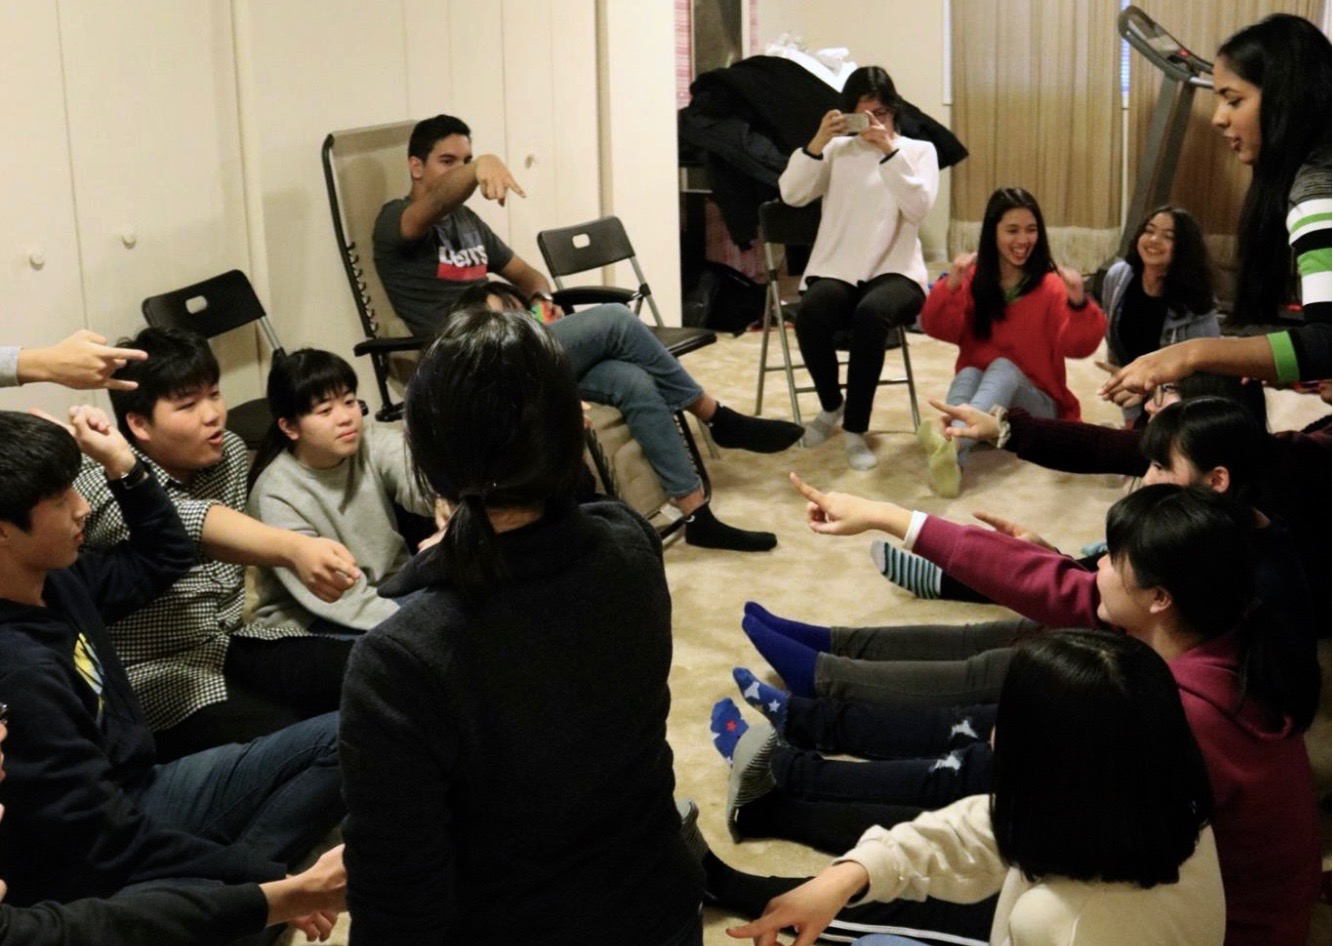 During the welcome party, Chiben Gakuen students played Mafia as an icebreaker with Jefferson students.